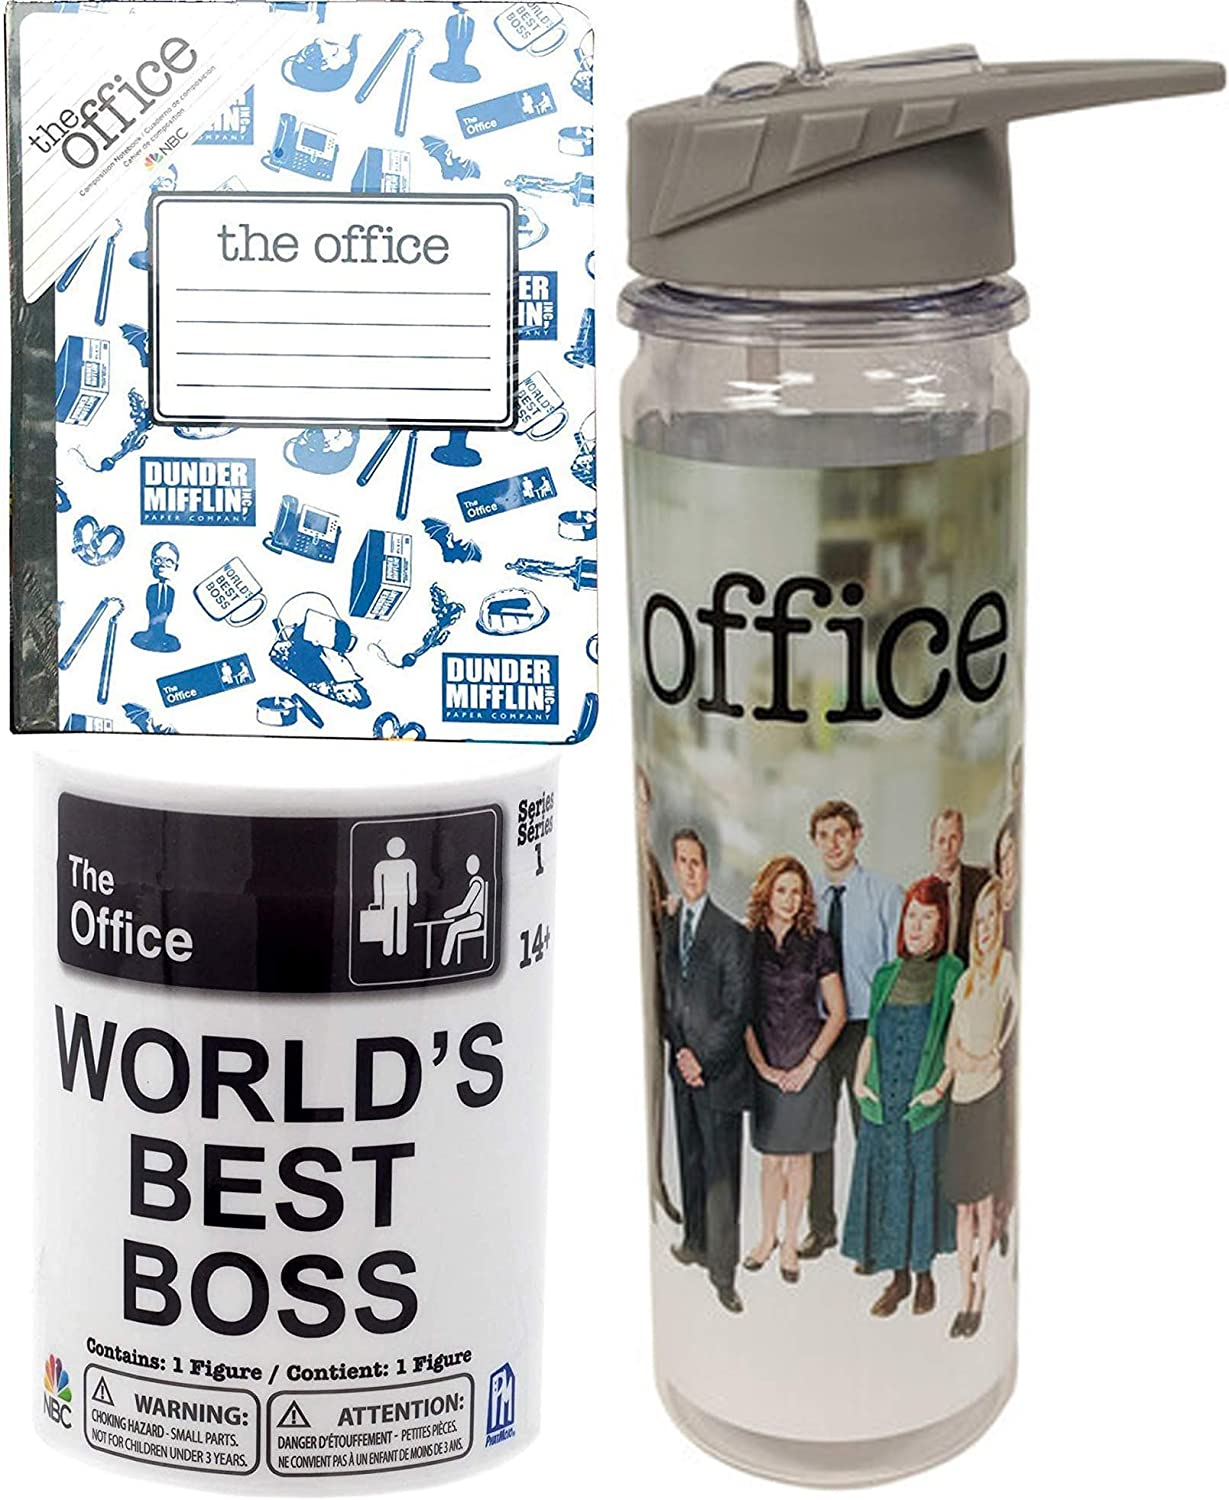 Water The Office Figure Collectible Bundled with NBC Dunder-Mifflin World's Best Boss Mini Figure Blind Can + NBC Series Notebook Hardcover Composition + Character Bottle 3 Items